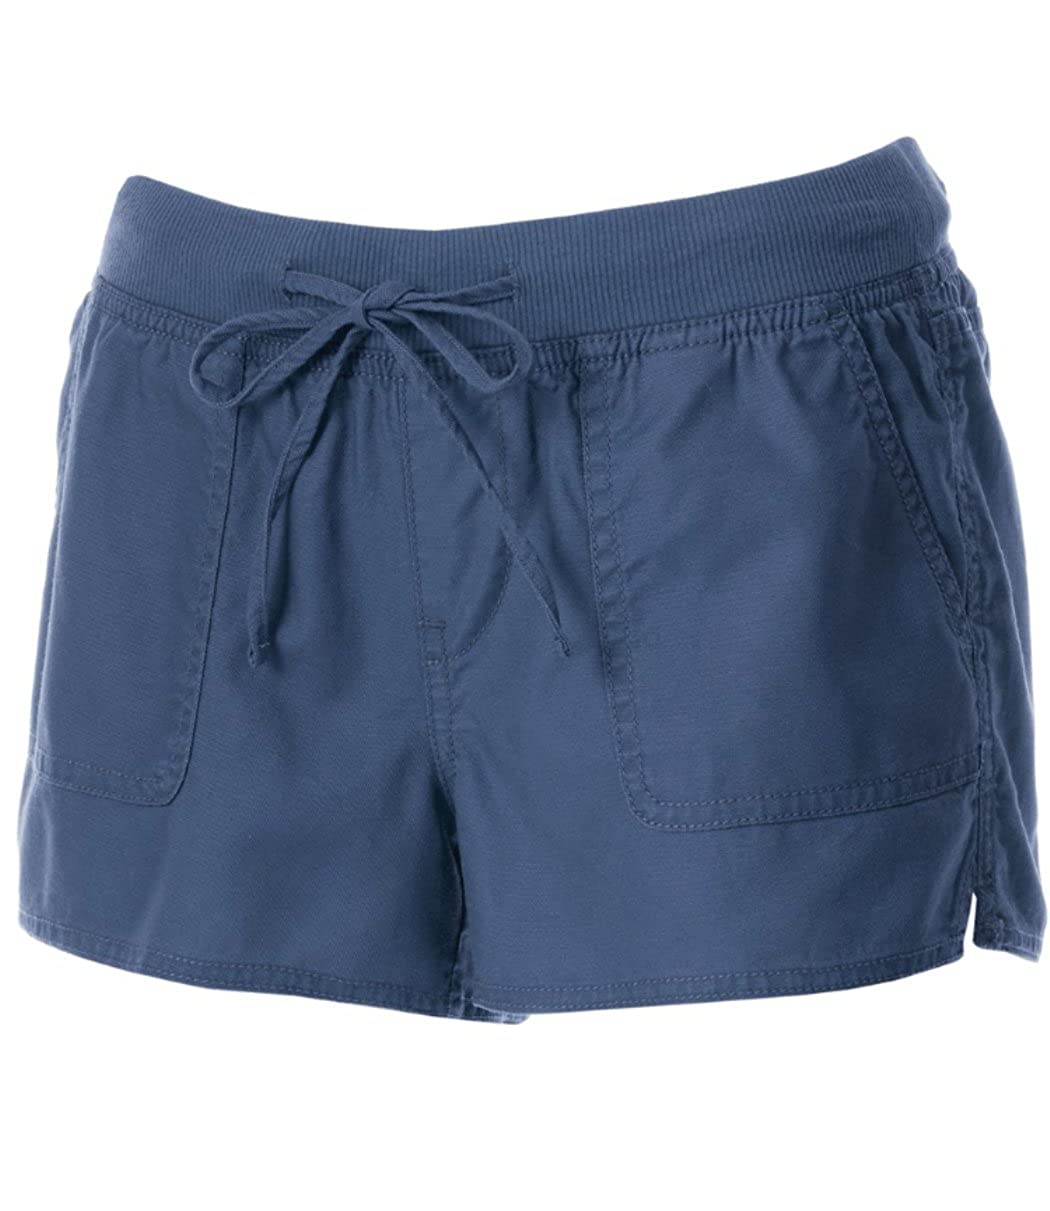 SO Juniors Drawstring Soft Shortie Shorts